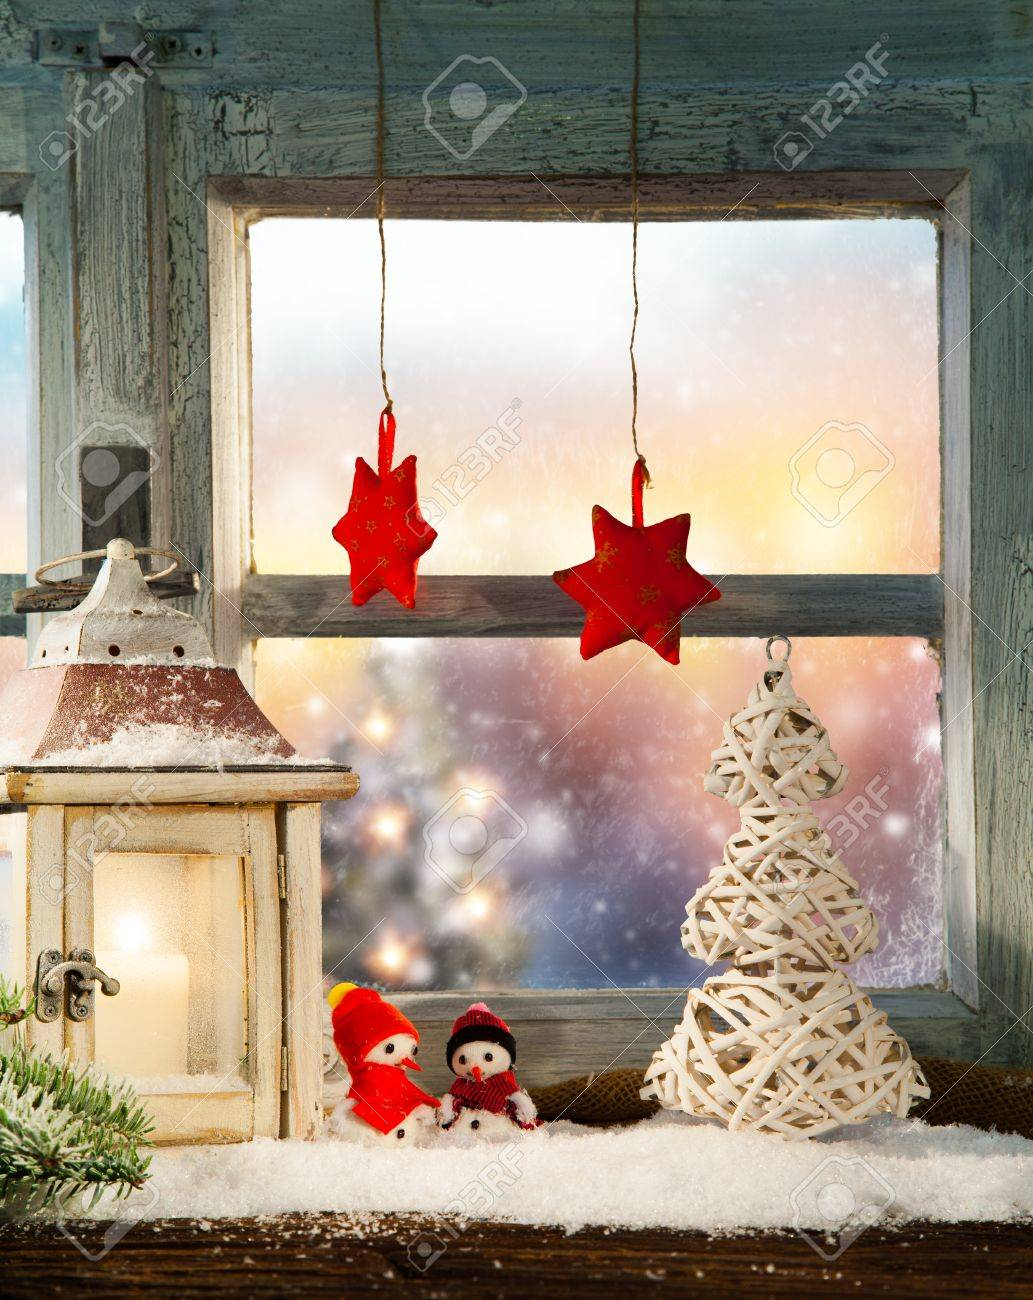 Atmospheric Christmas Window Sill Decoration With Beautiful Evening